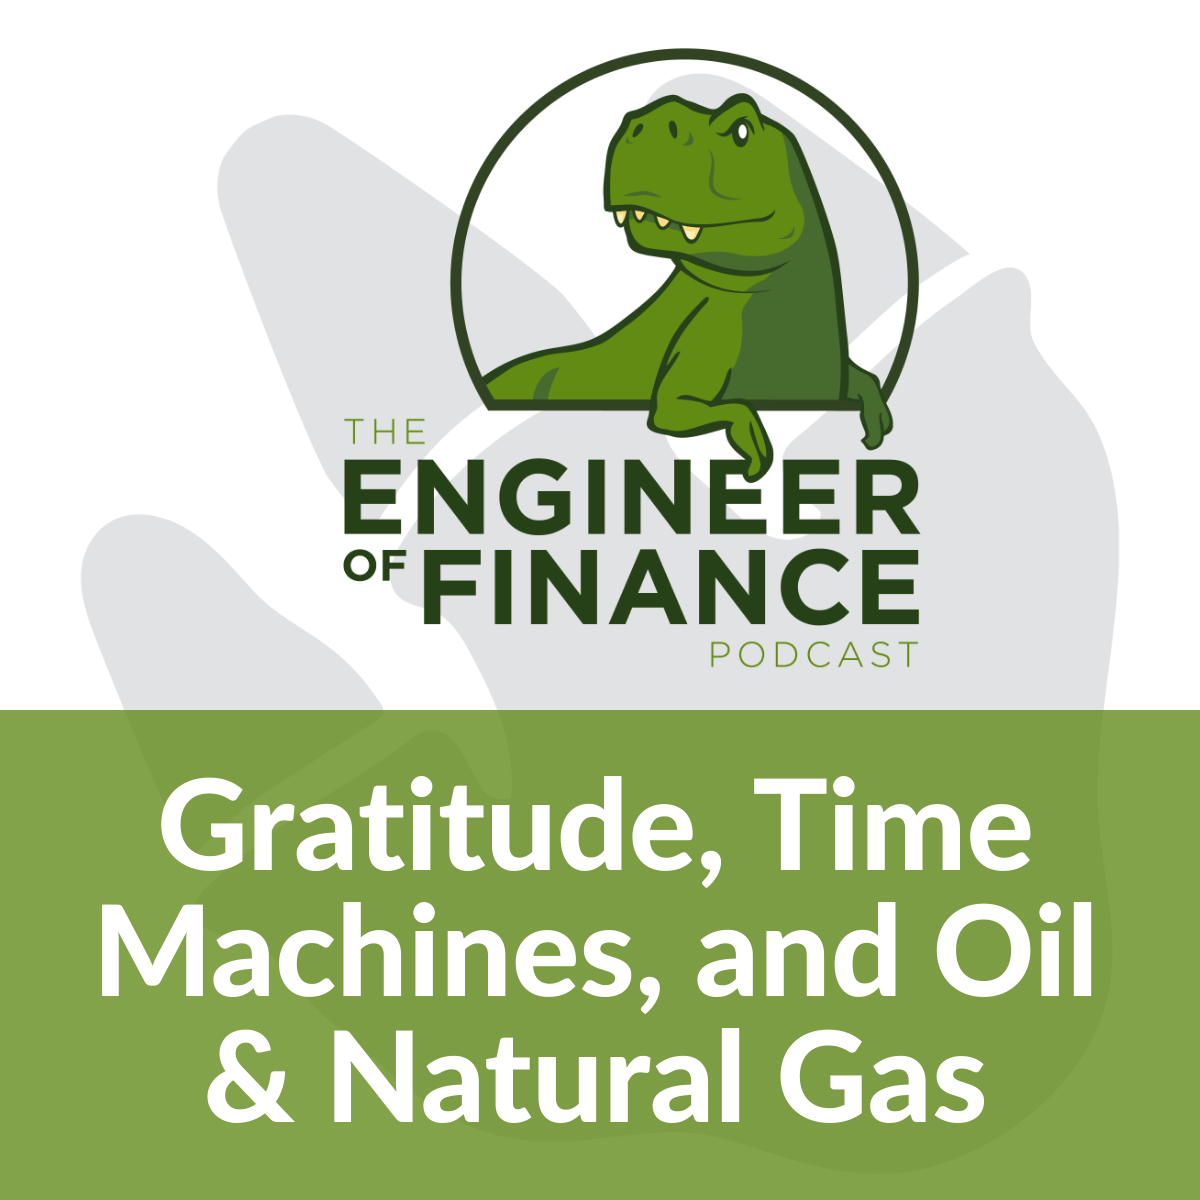 Gratitude, Time Machines, and Oil & Natural Gas – Episode 147